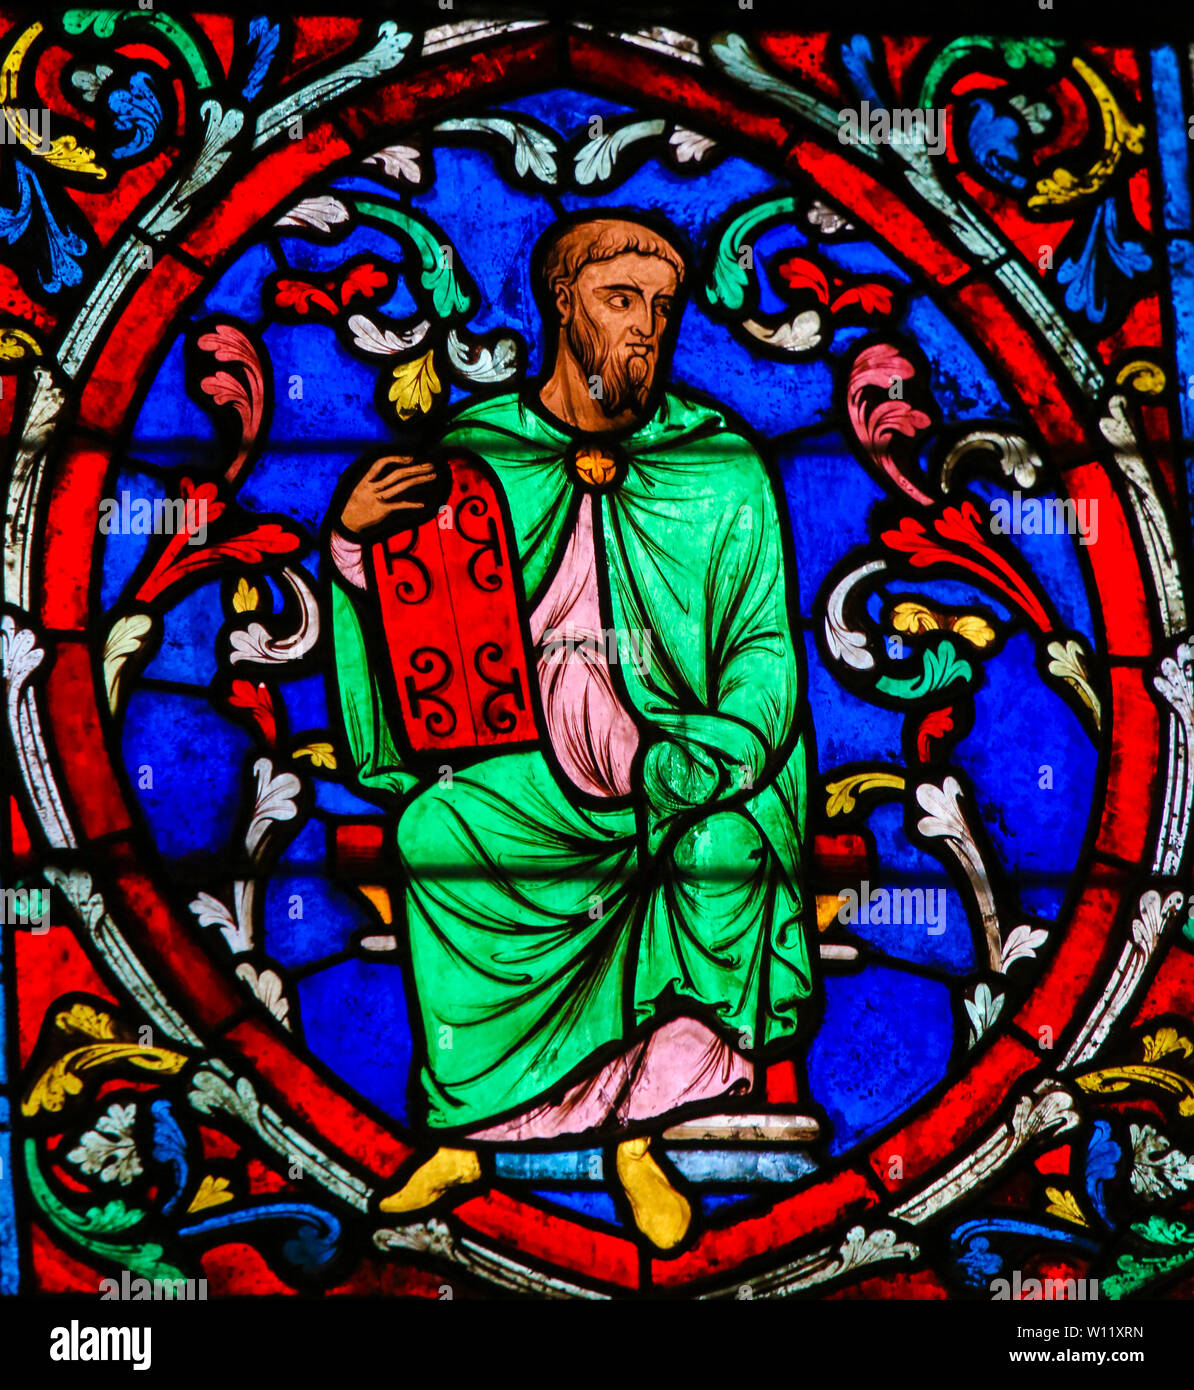 Stained Glass in the Cathedral of Notre Dame, Paris, France, depicting Moses carrying the Stone Tablets with the Ten Commandments Stock Photo